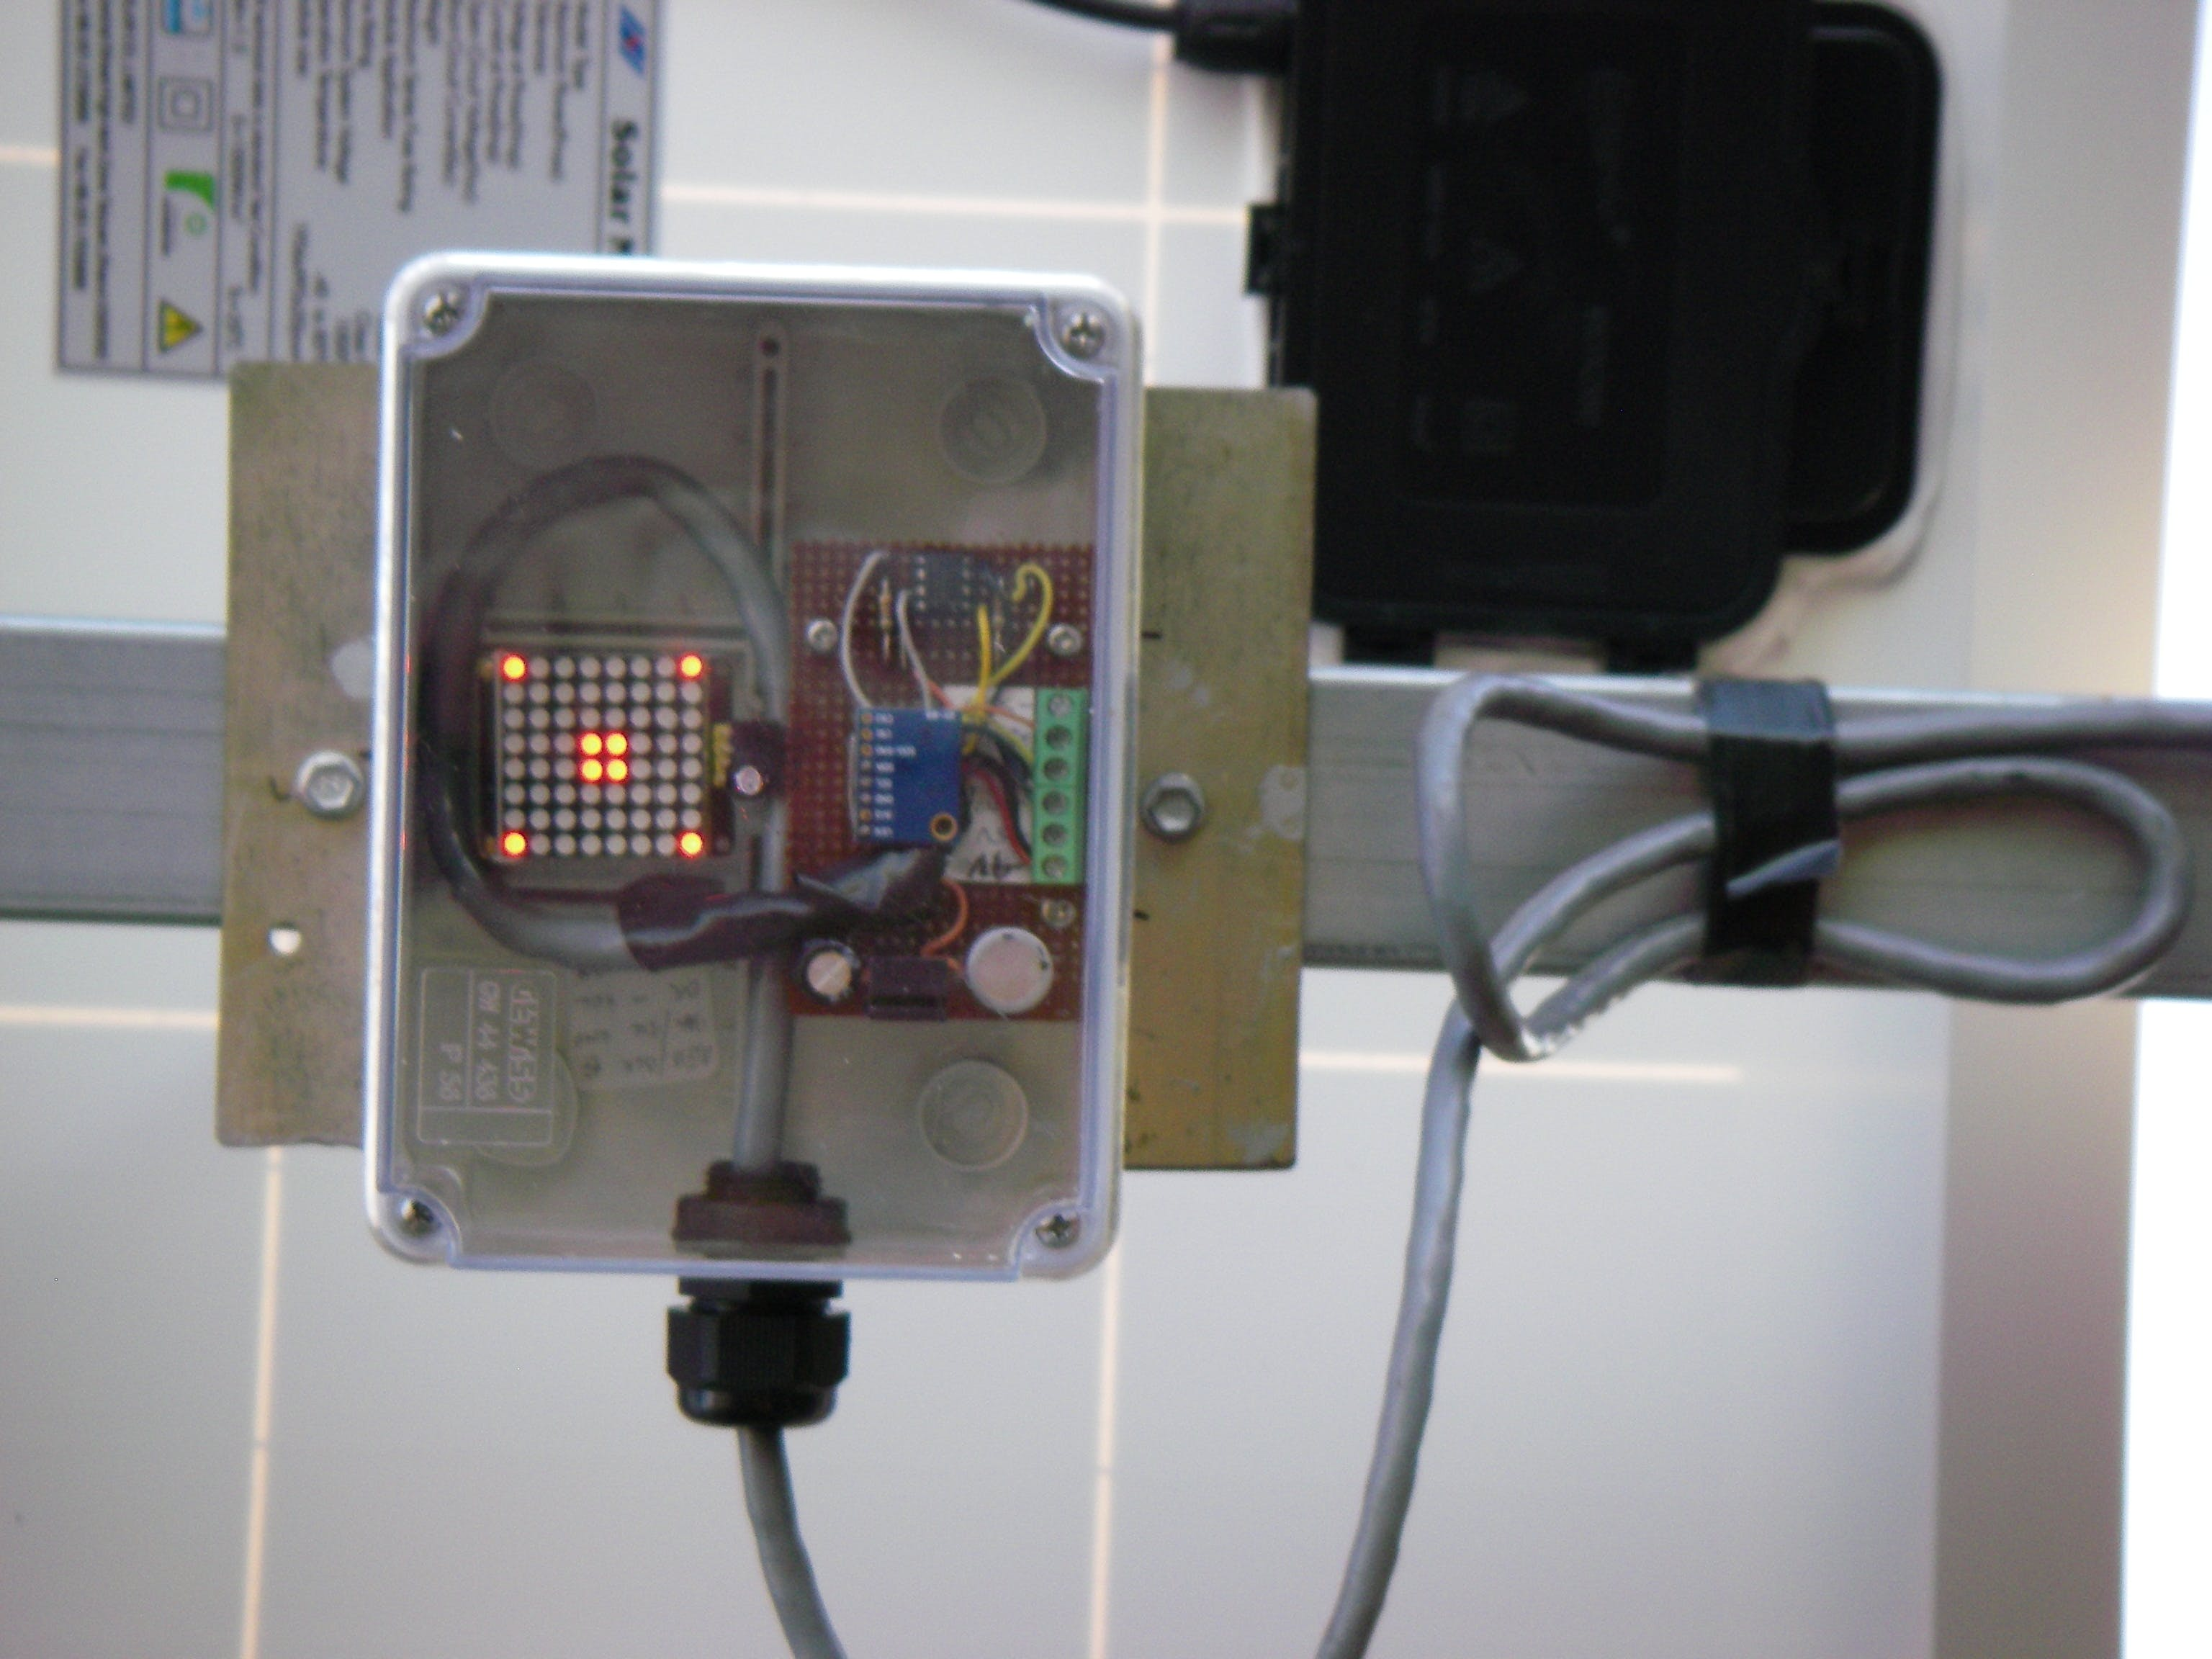 Buffer circuit and pwer regulator added to gyro and display in encloure on panel frame